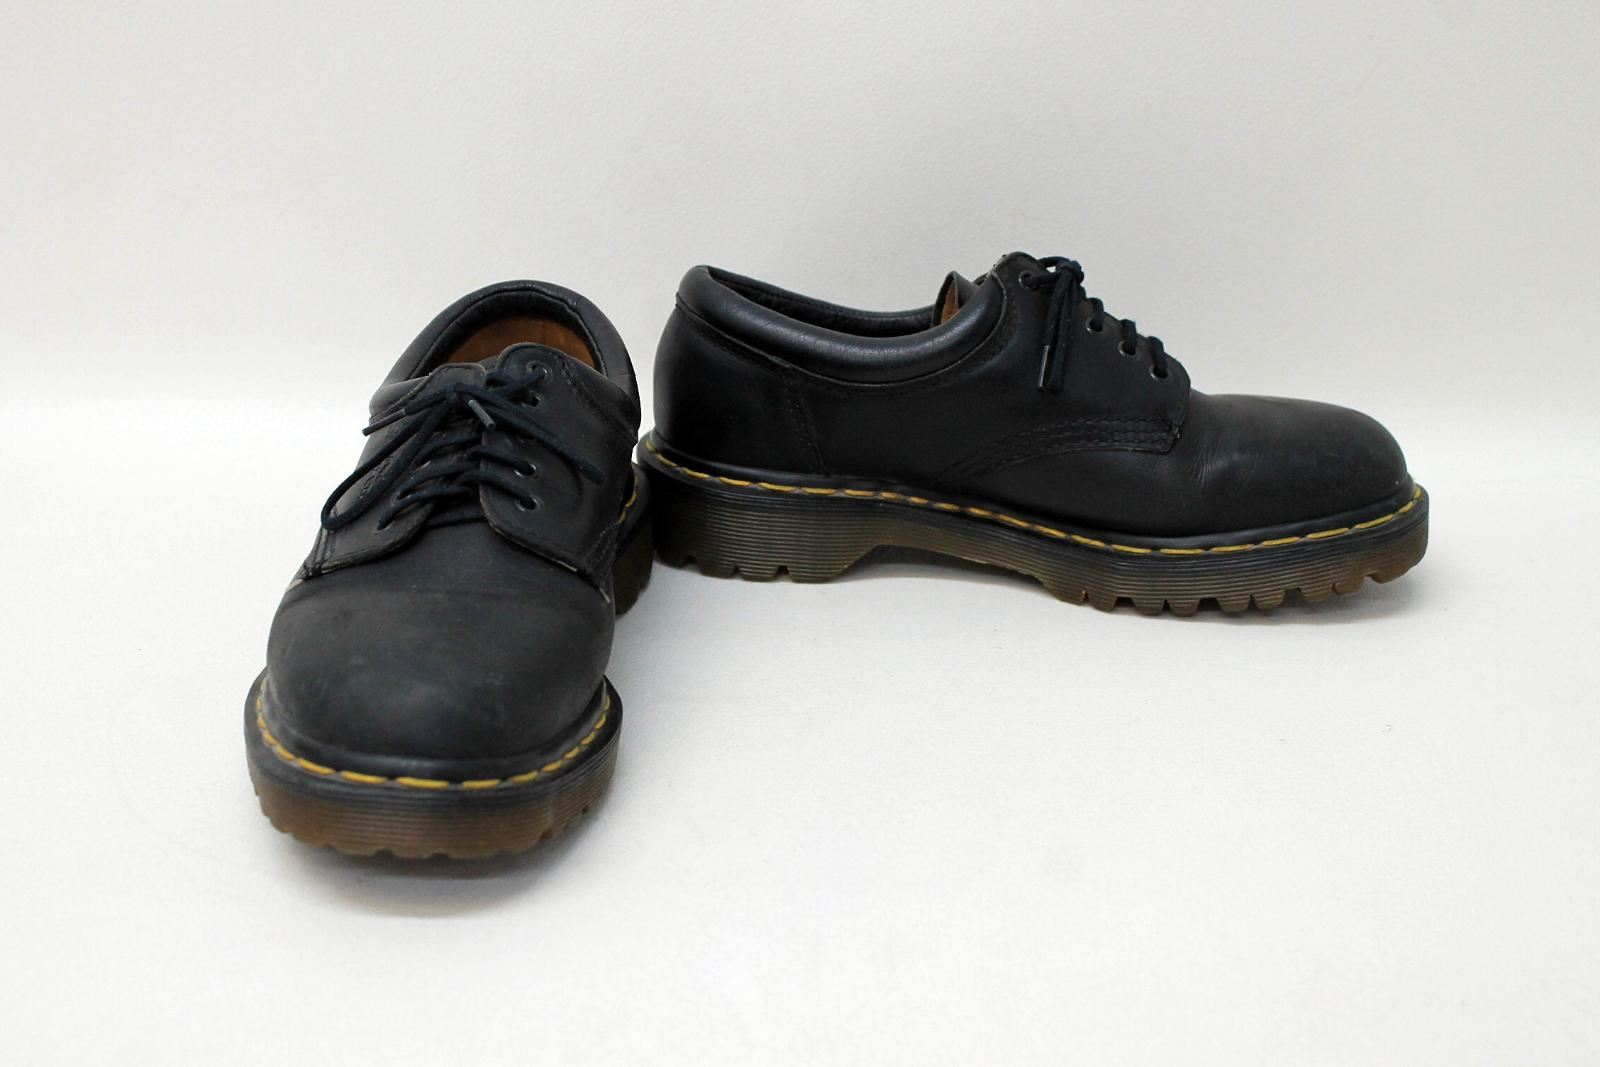 Liberal Dr Martens Ladies Black Leather Five-eyelet Lace Up Oxford Shoes Size Uk6 Eu39 Clothing, Shoes & Accessories Flats